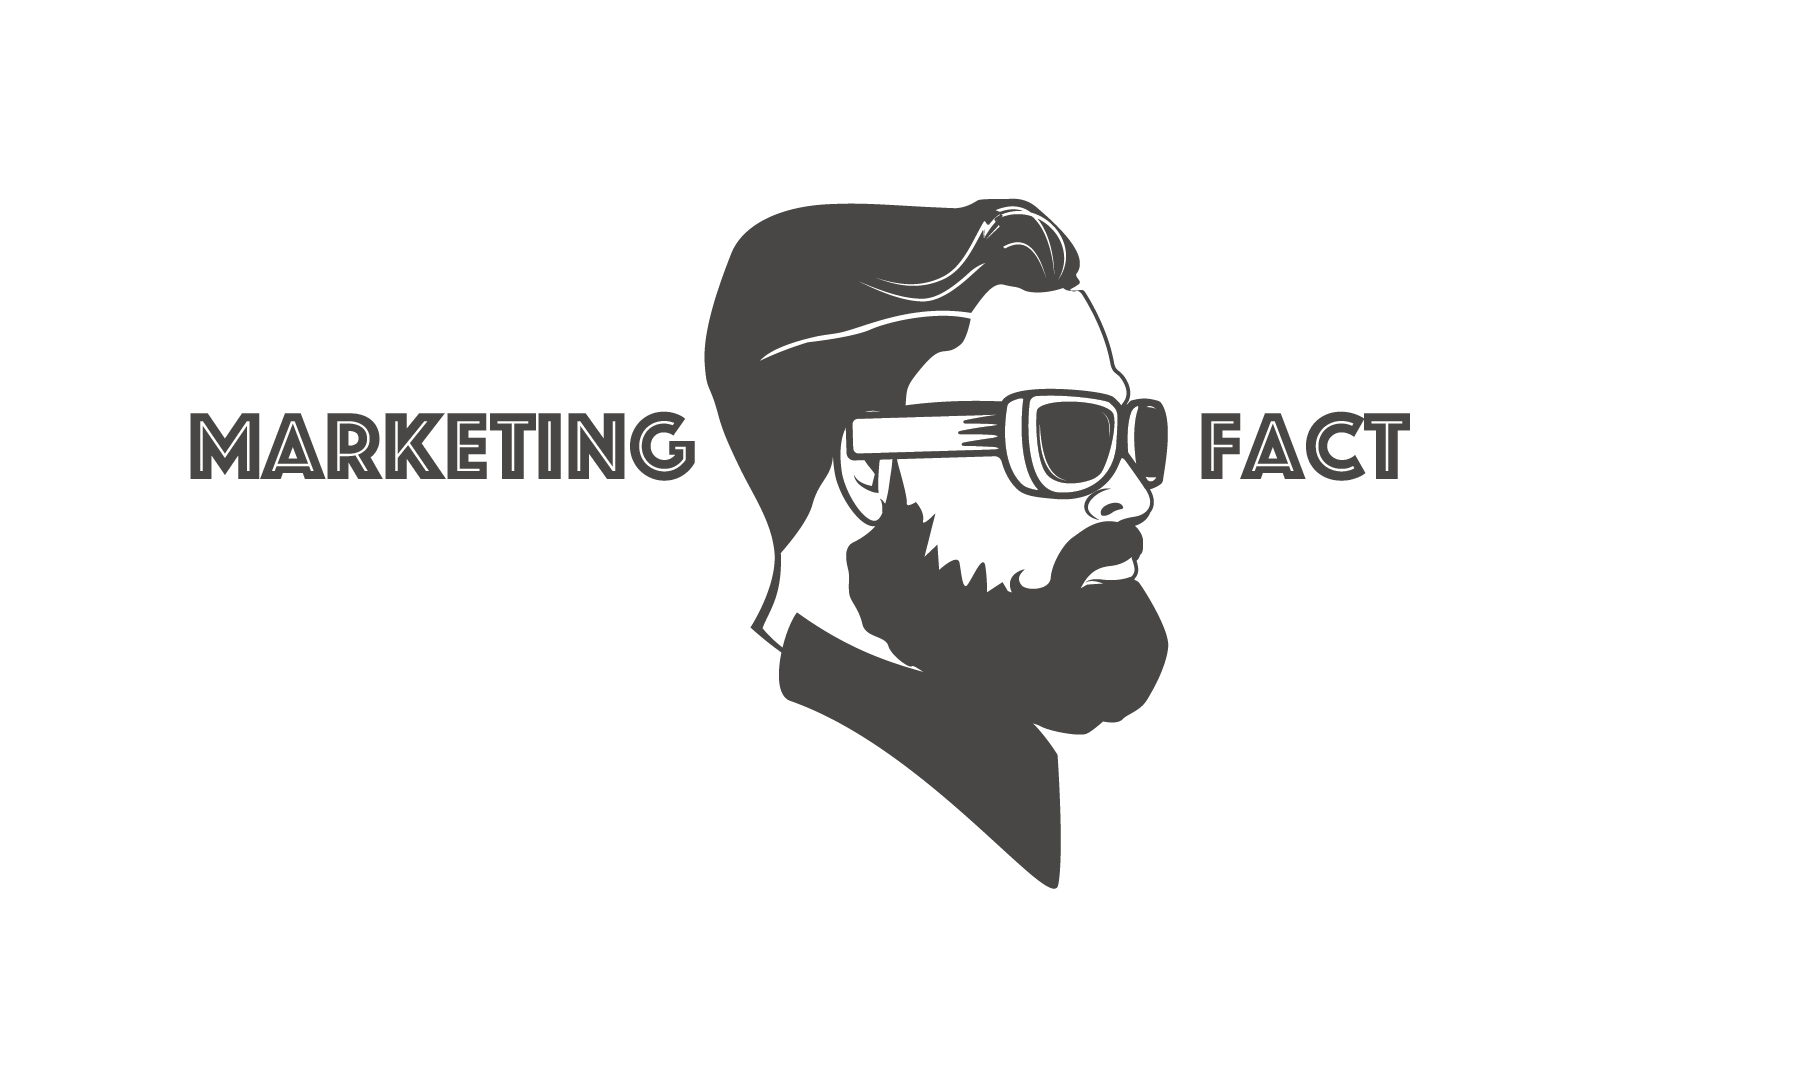 Marketingfact